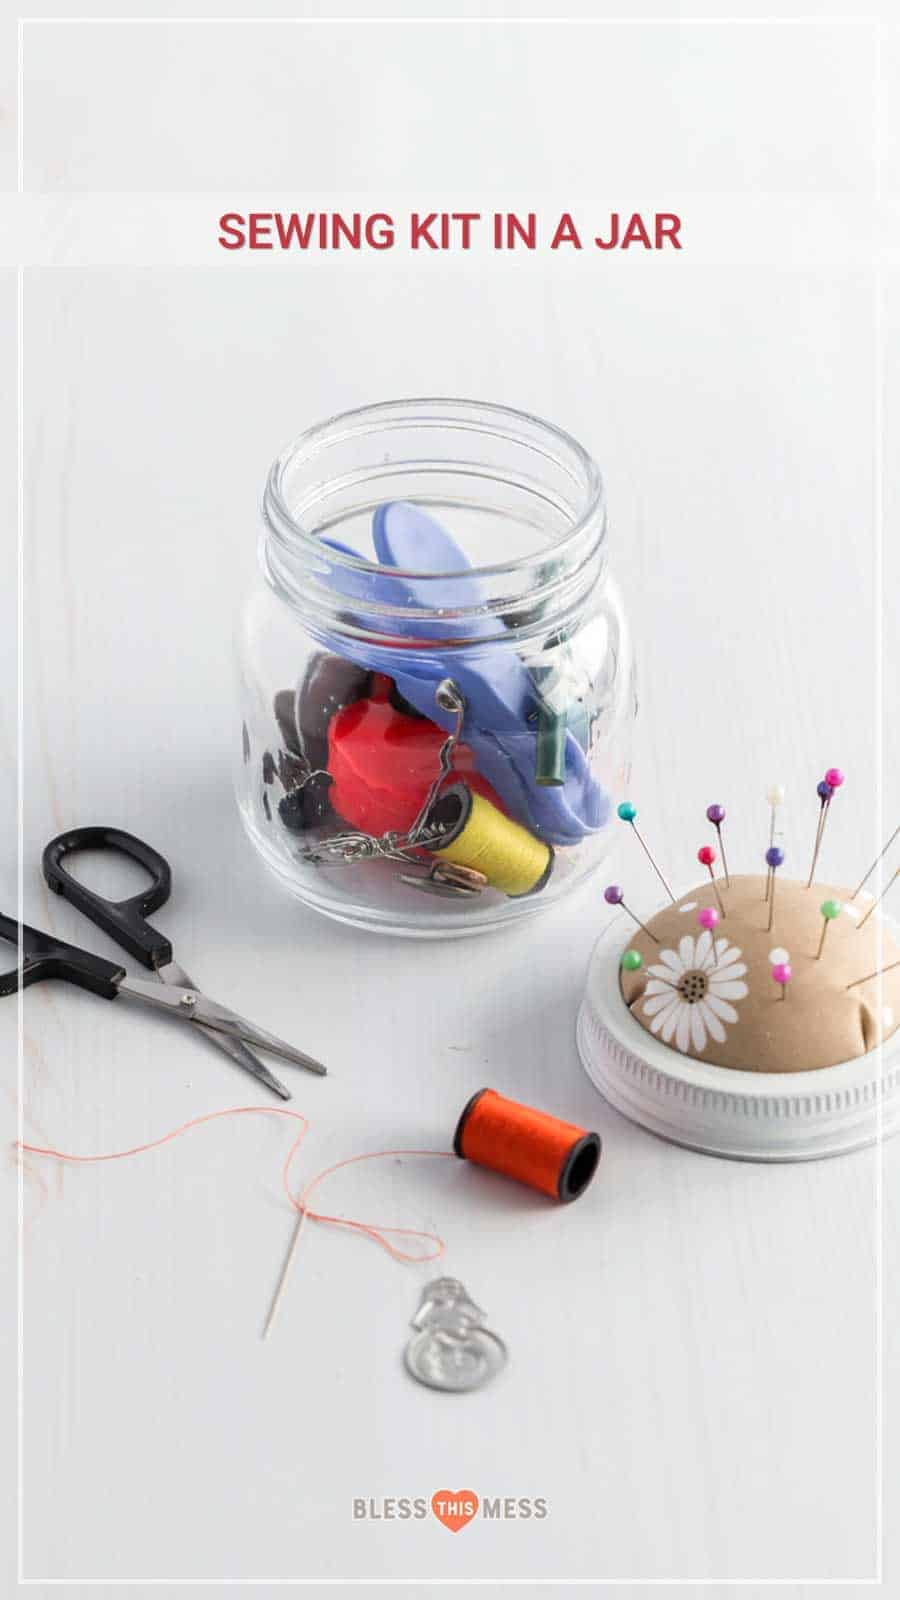 This DIY sewing kit in a jar is such a fun, creative, simple, and sweet gift for the crafty ones in your life! You can quickly make a few for the odds and ends of your holiday gifting list -- give them as host gifts, to teachers, or to anyone else you know who loves a fun craft project! #diy #sewingkit #diysewingkit #homemadesewingkit #sewkit #DIYchristmasgift